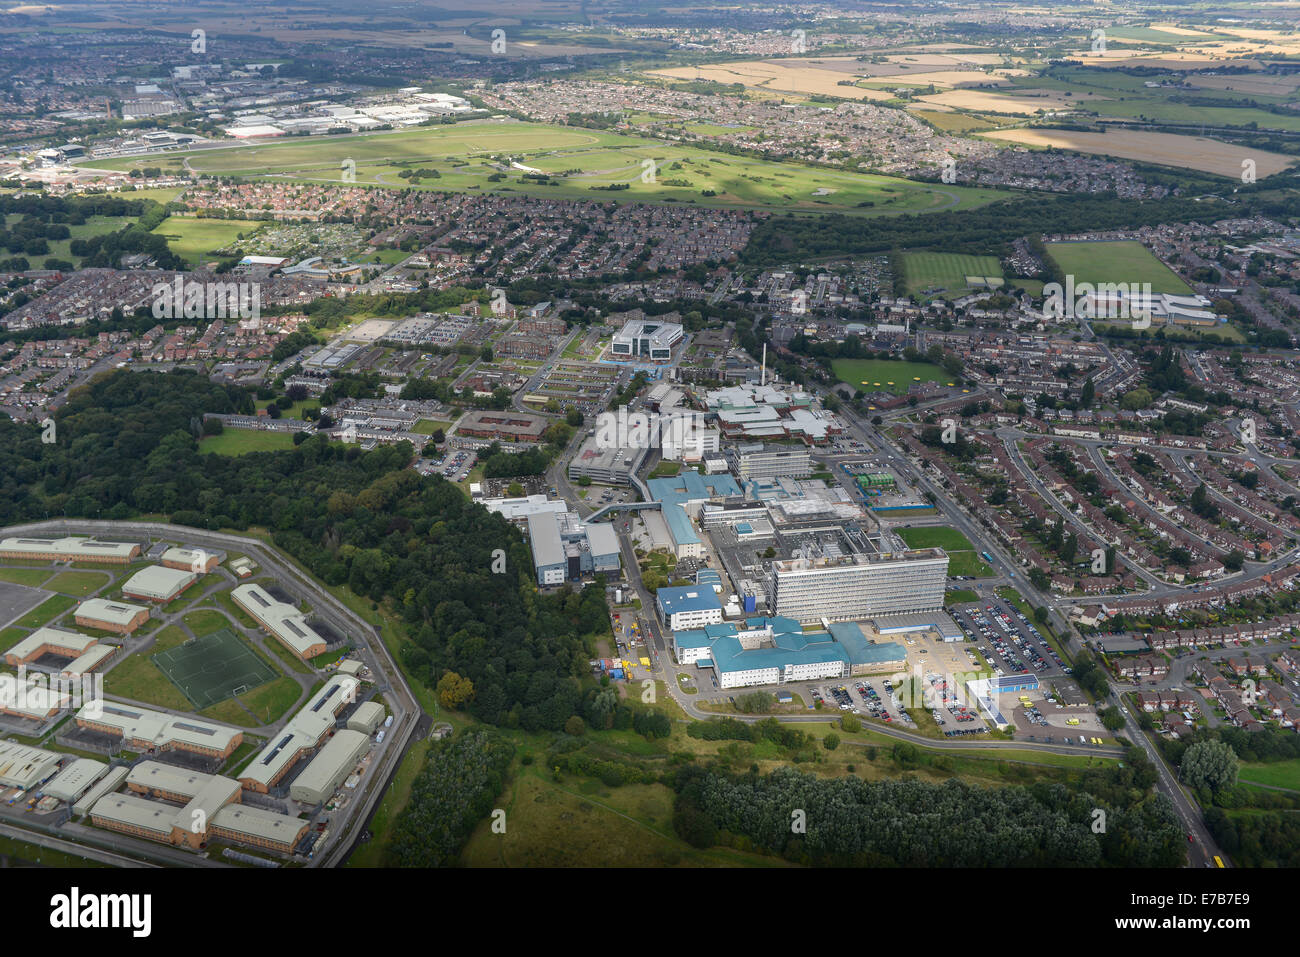 An aerial view of the Royal Liverpool University Hospital and surrounding area of Fazakerley - Stock Image